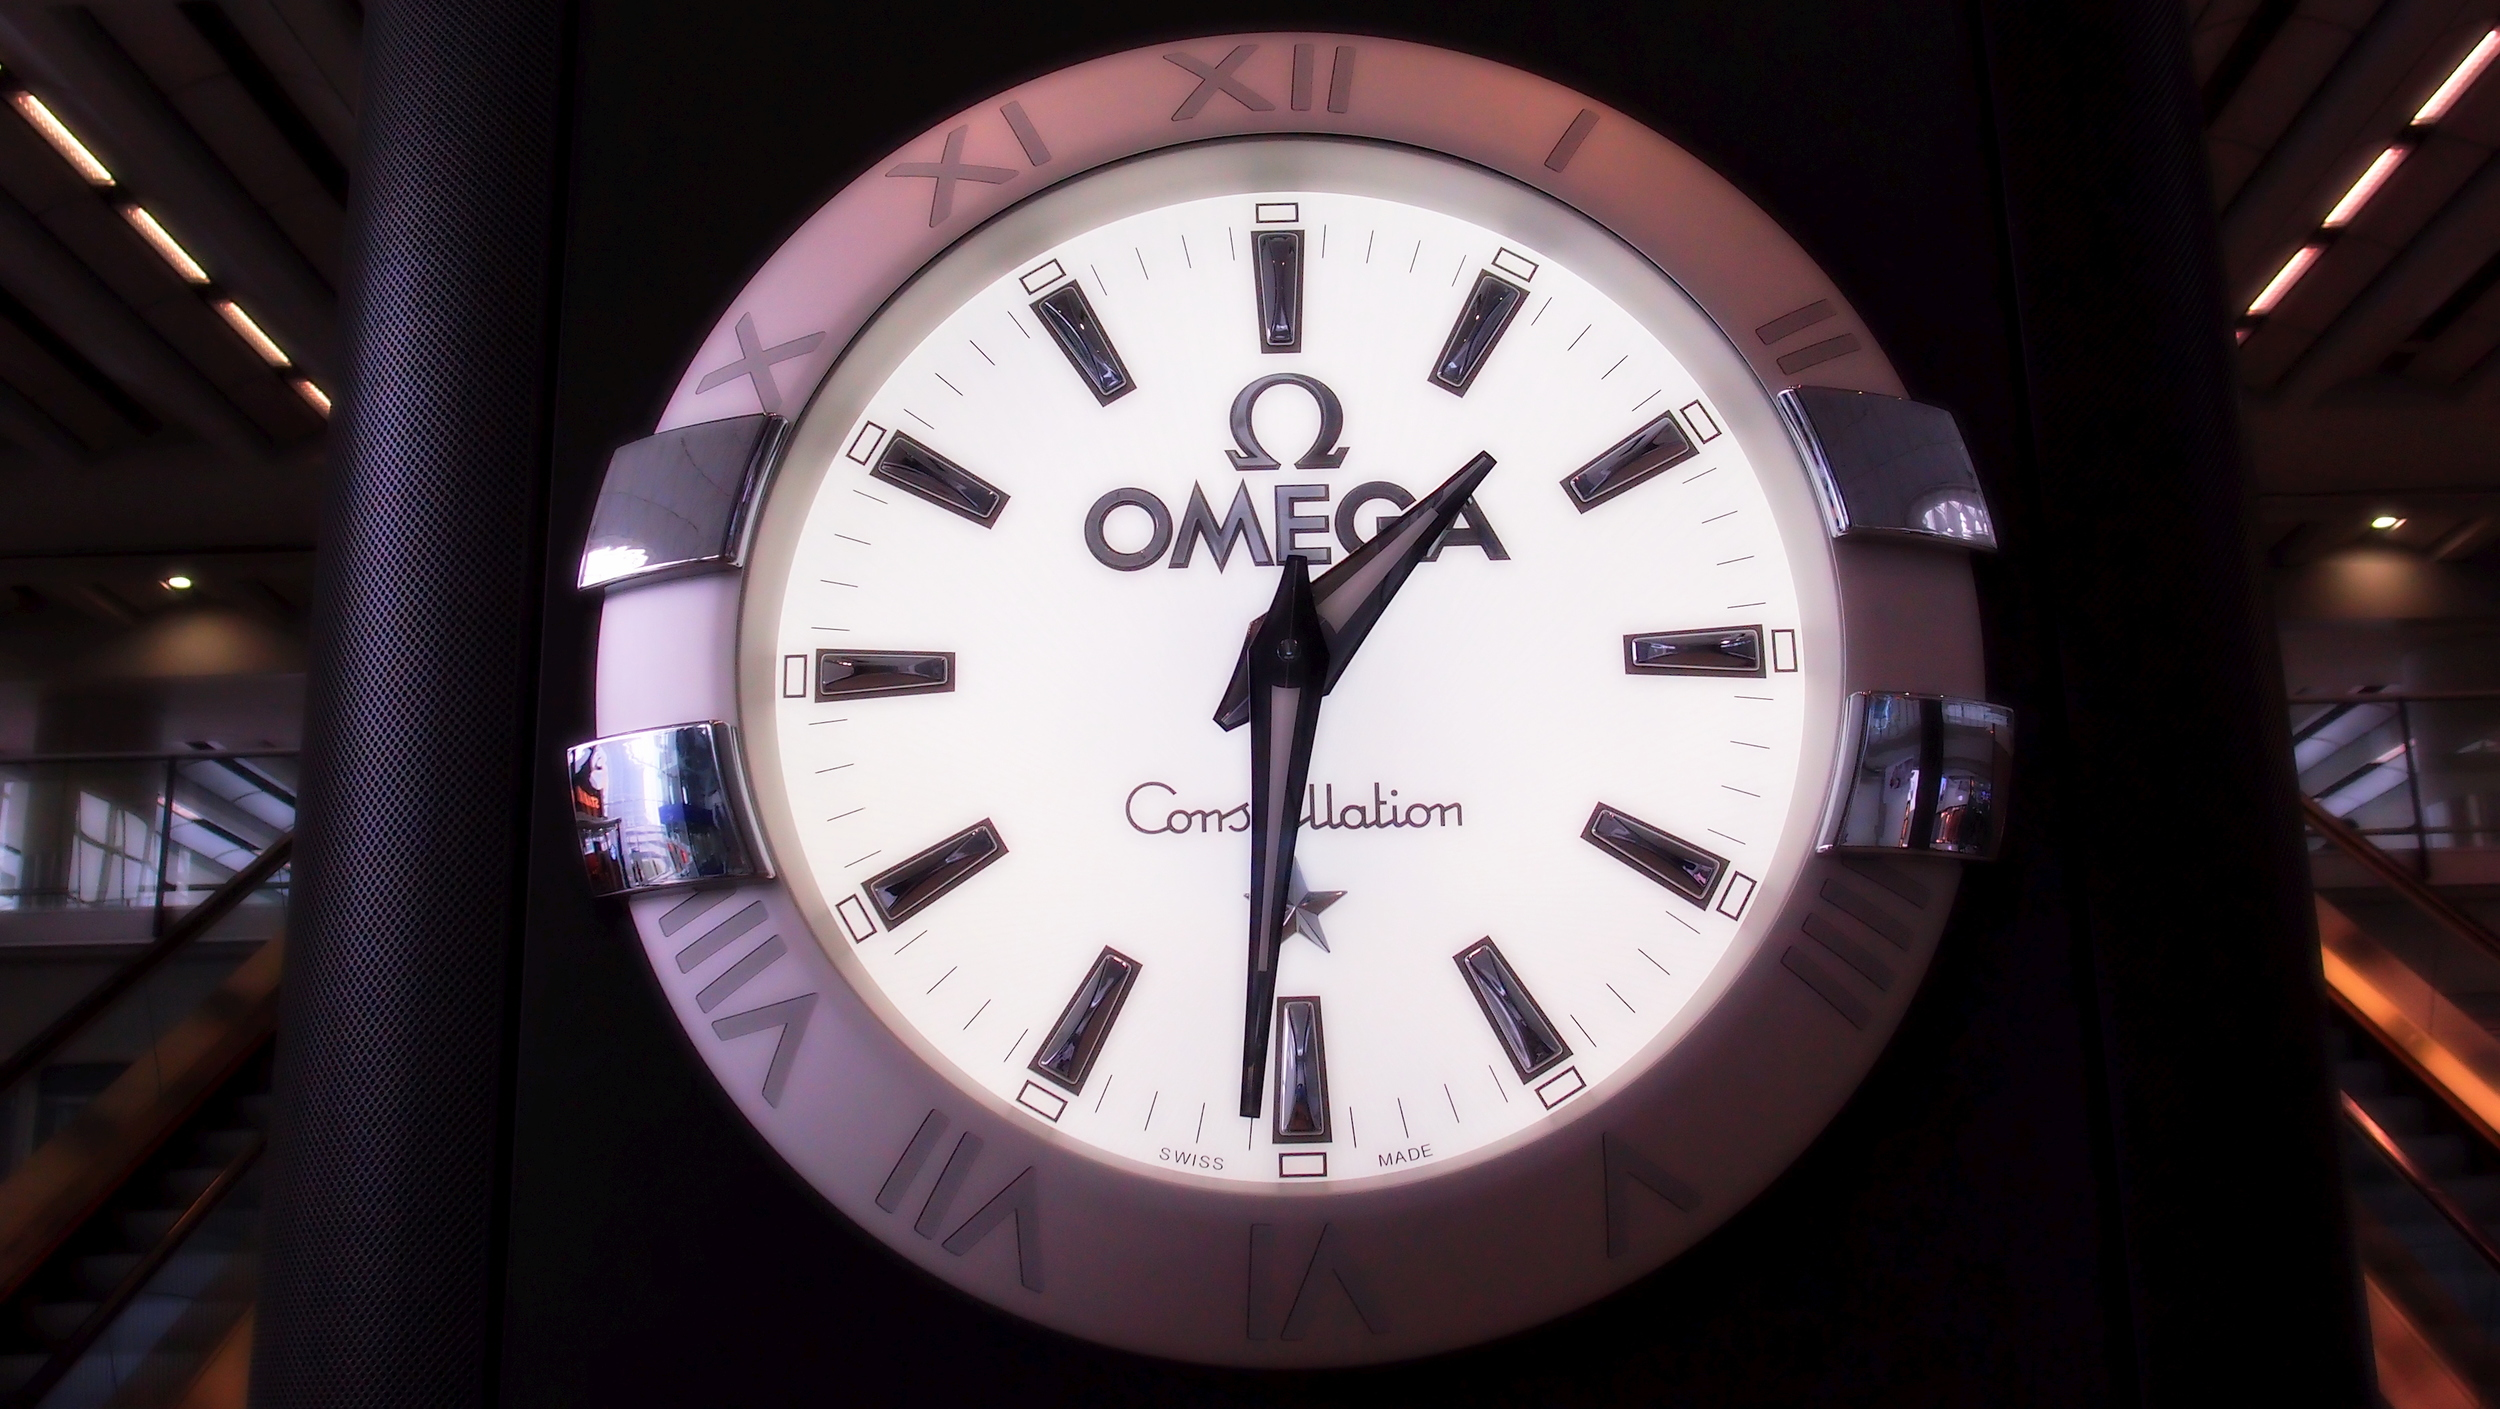 The biggest watch in the world!